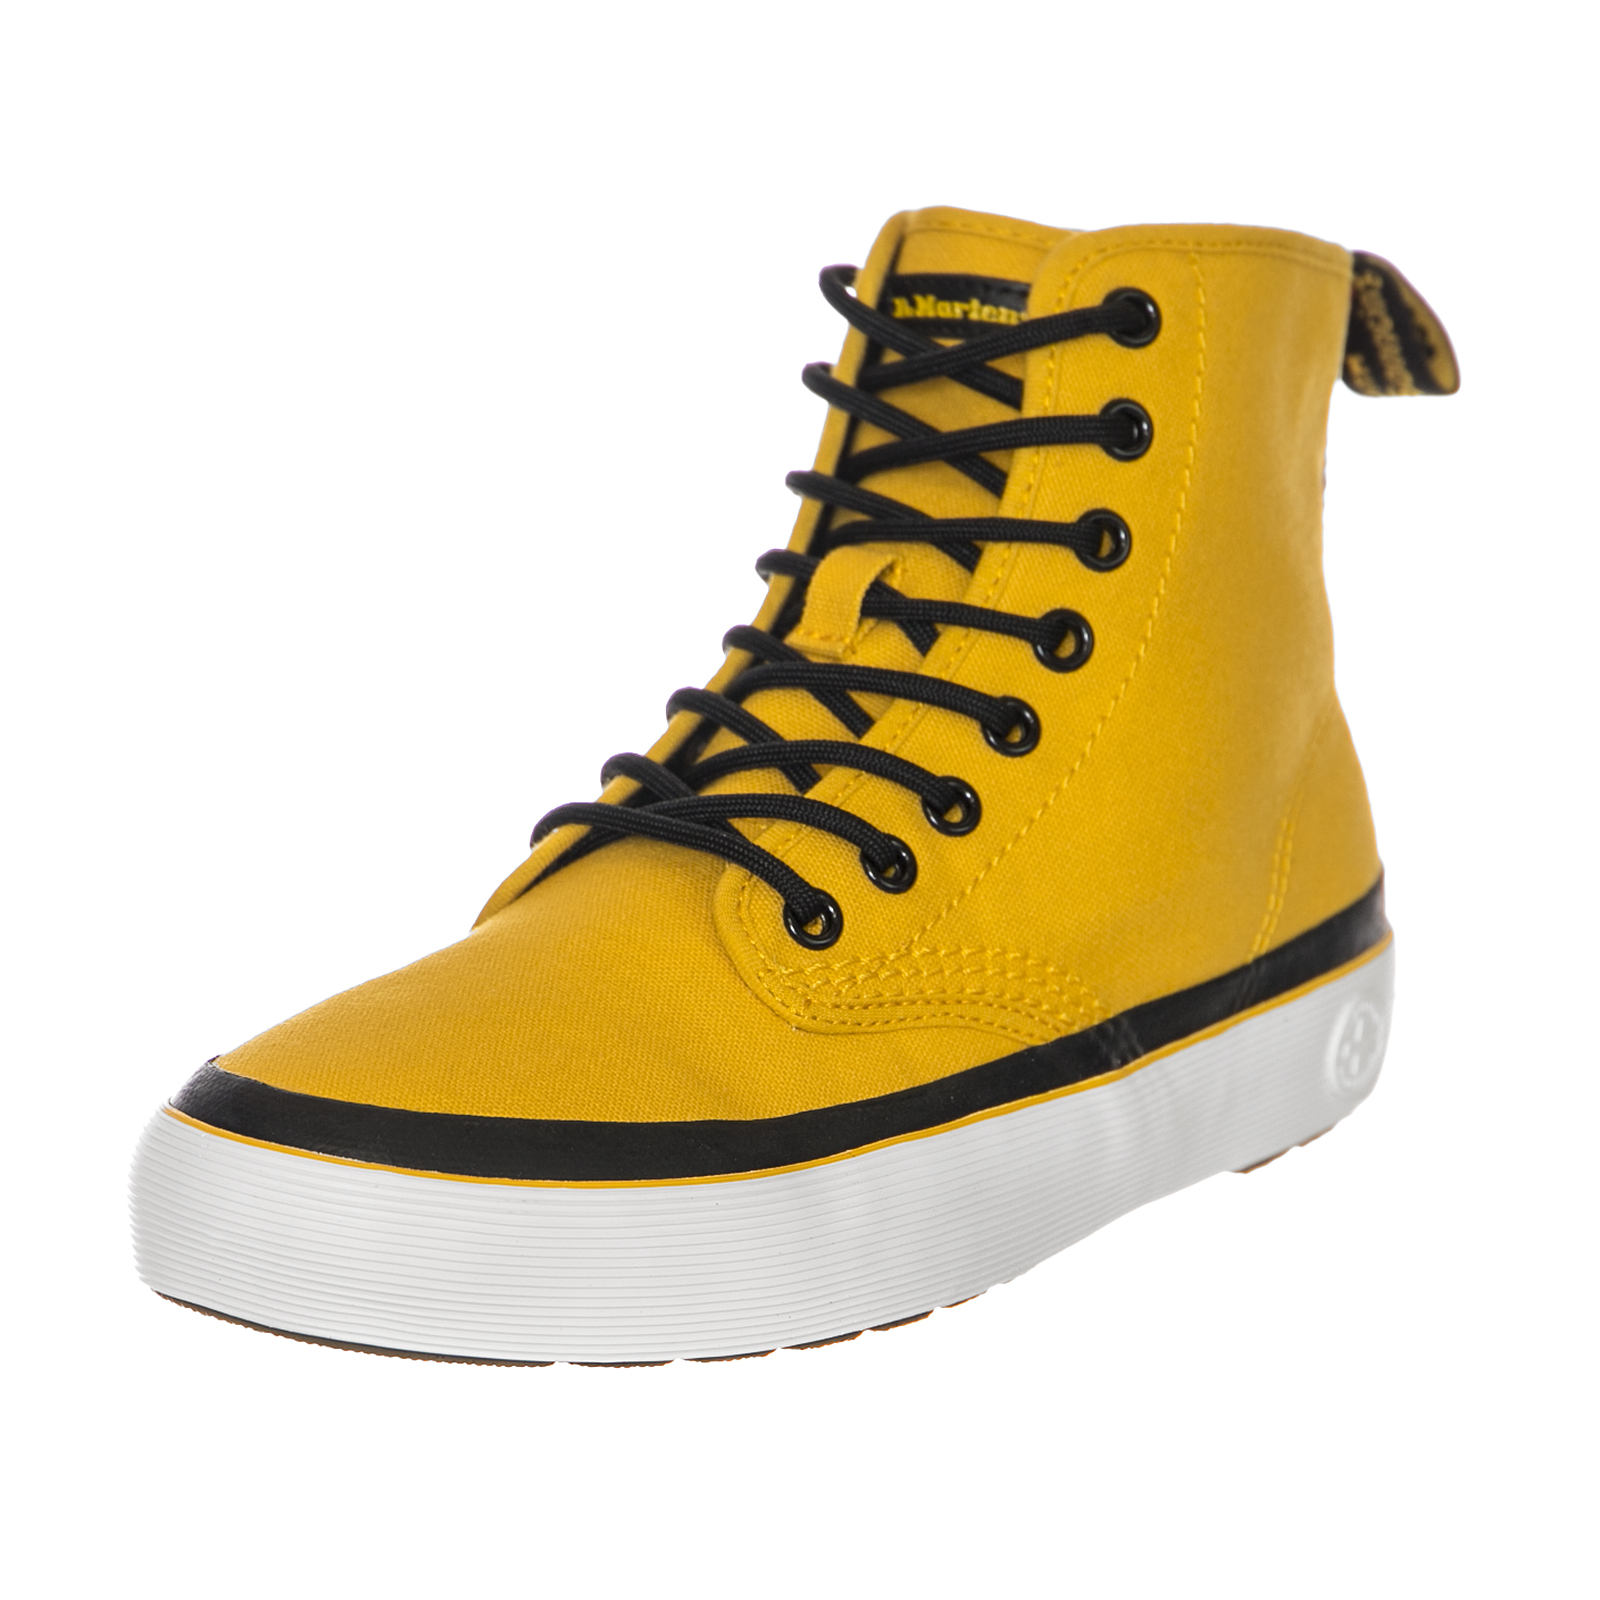 low priced 1e578 987b6 Dr.Martens Zapatillas Monet Dms Amarillo Dark Rojo Lona amarillo